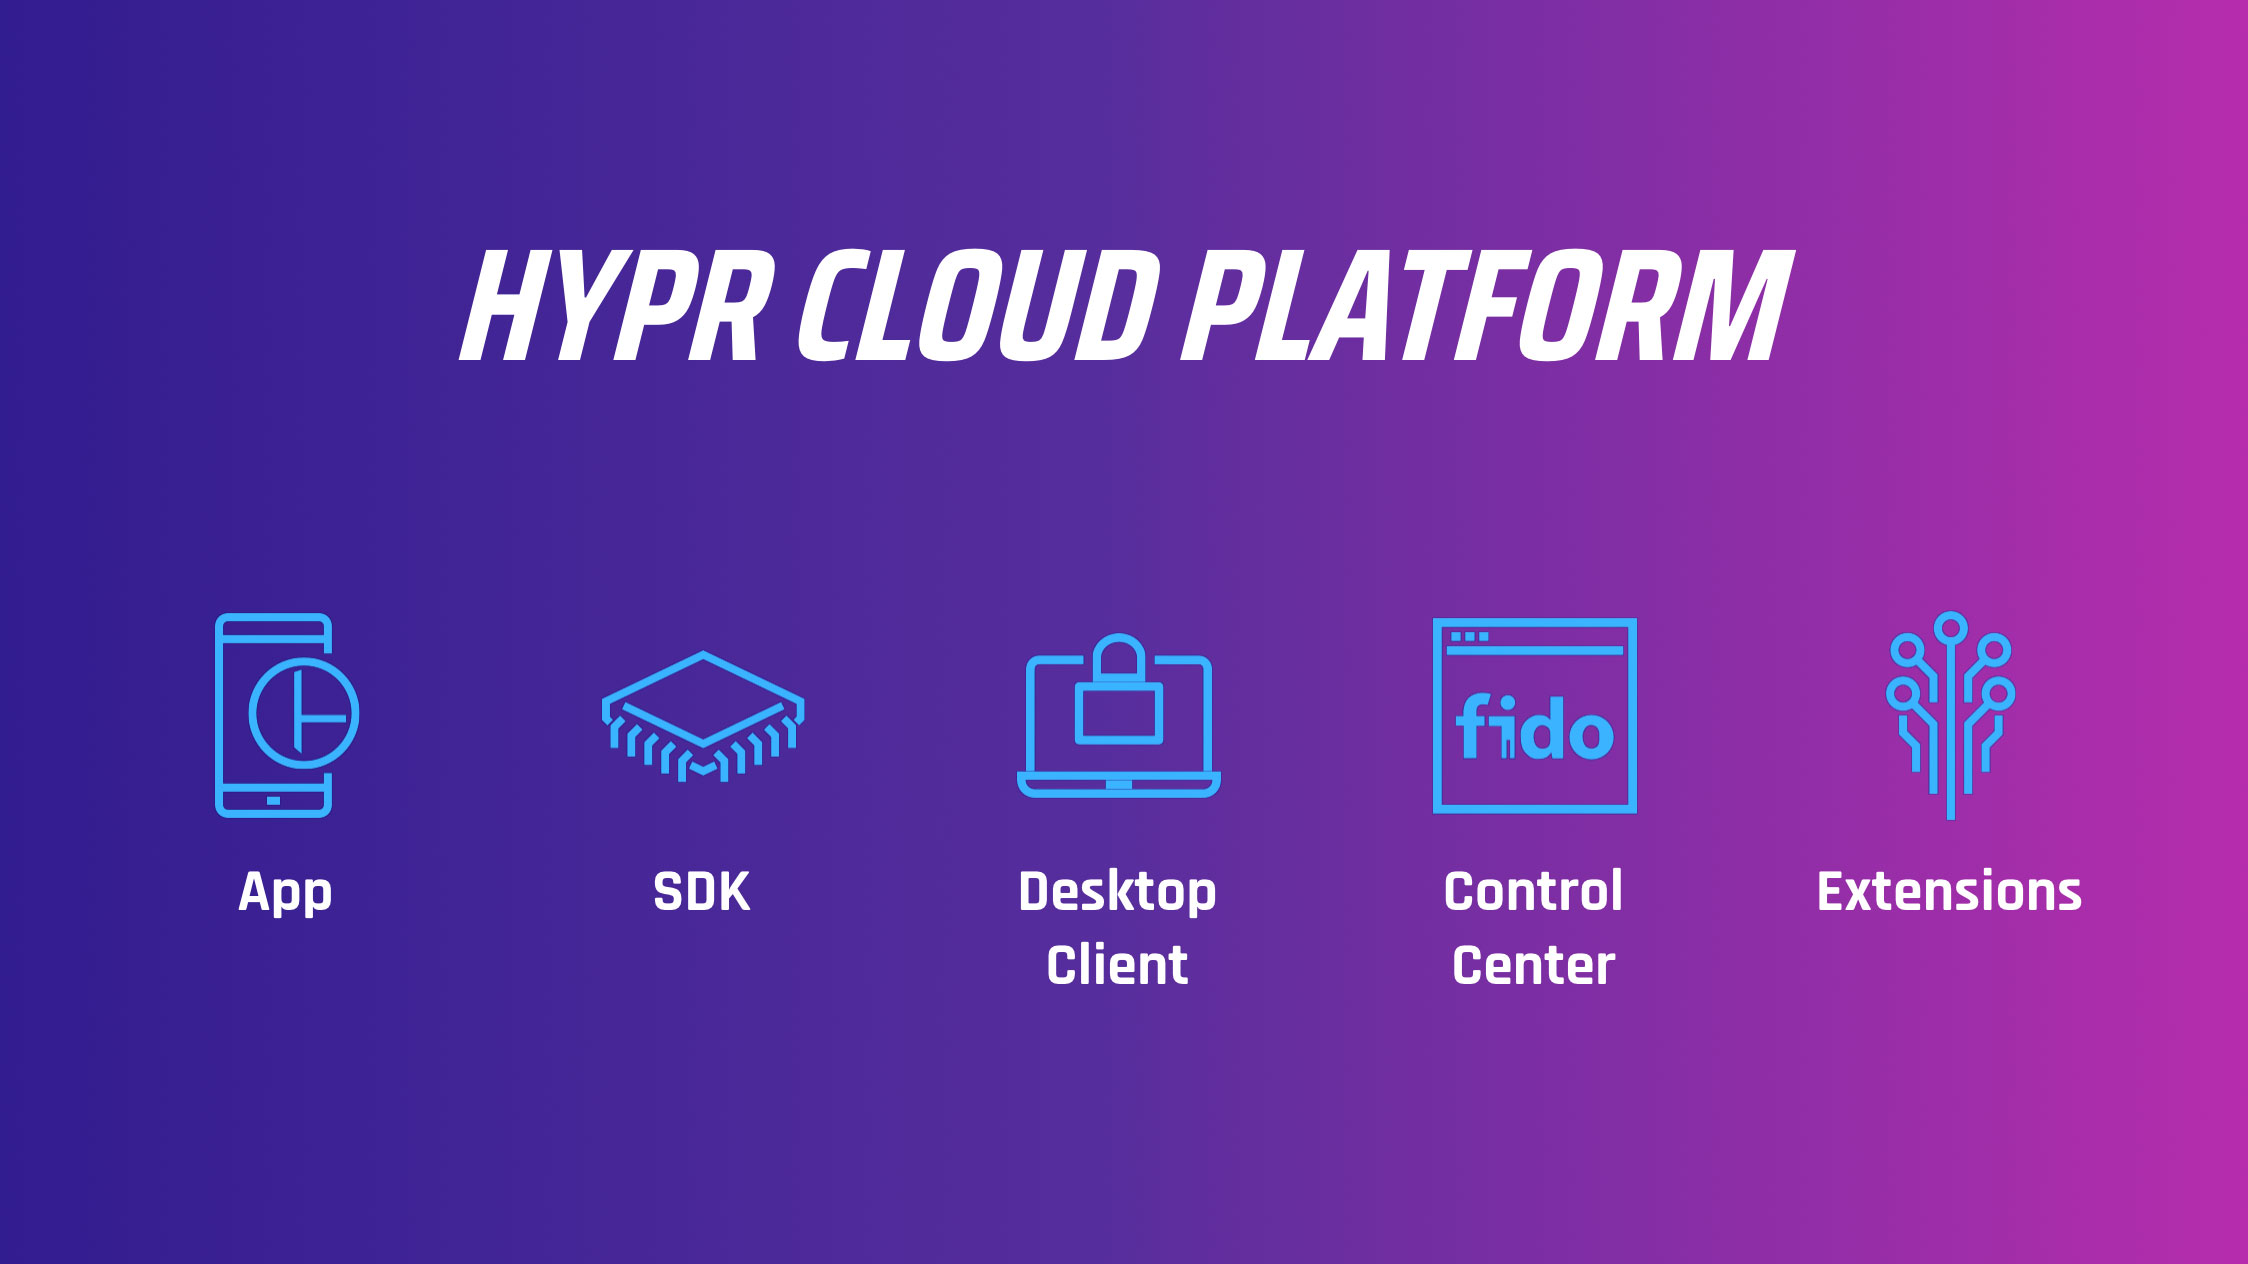 Image for HYPR Cloud Platform 6.4 Release